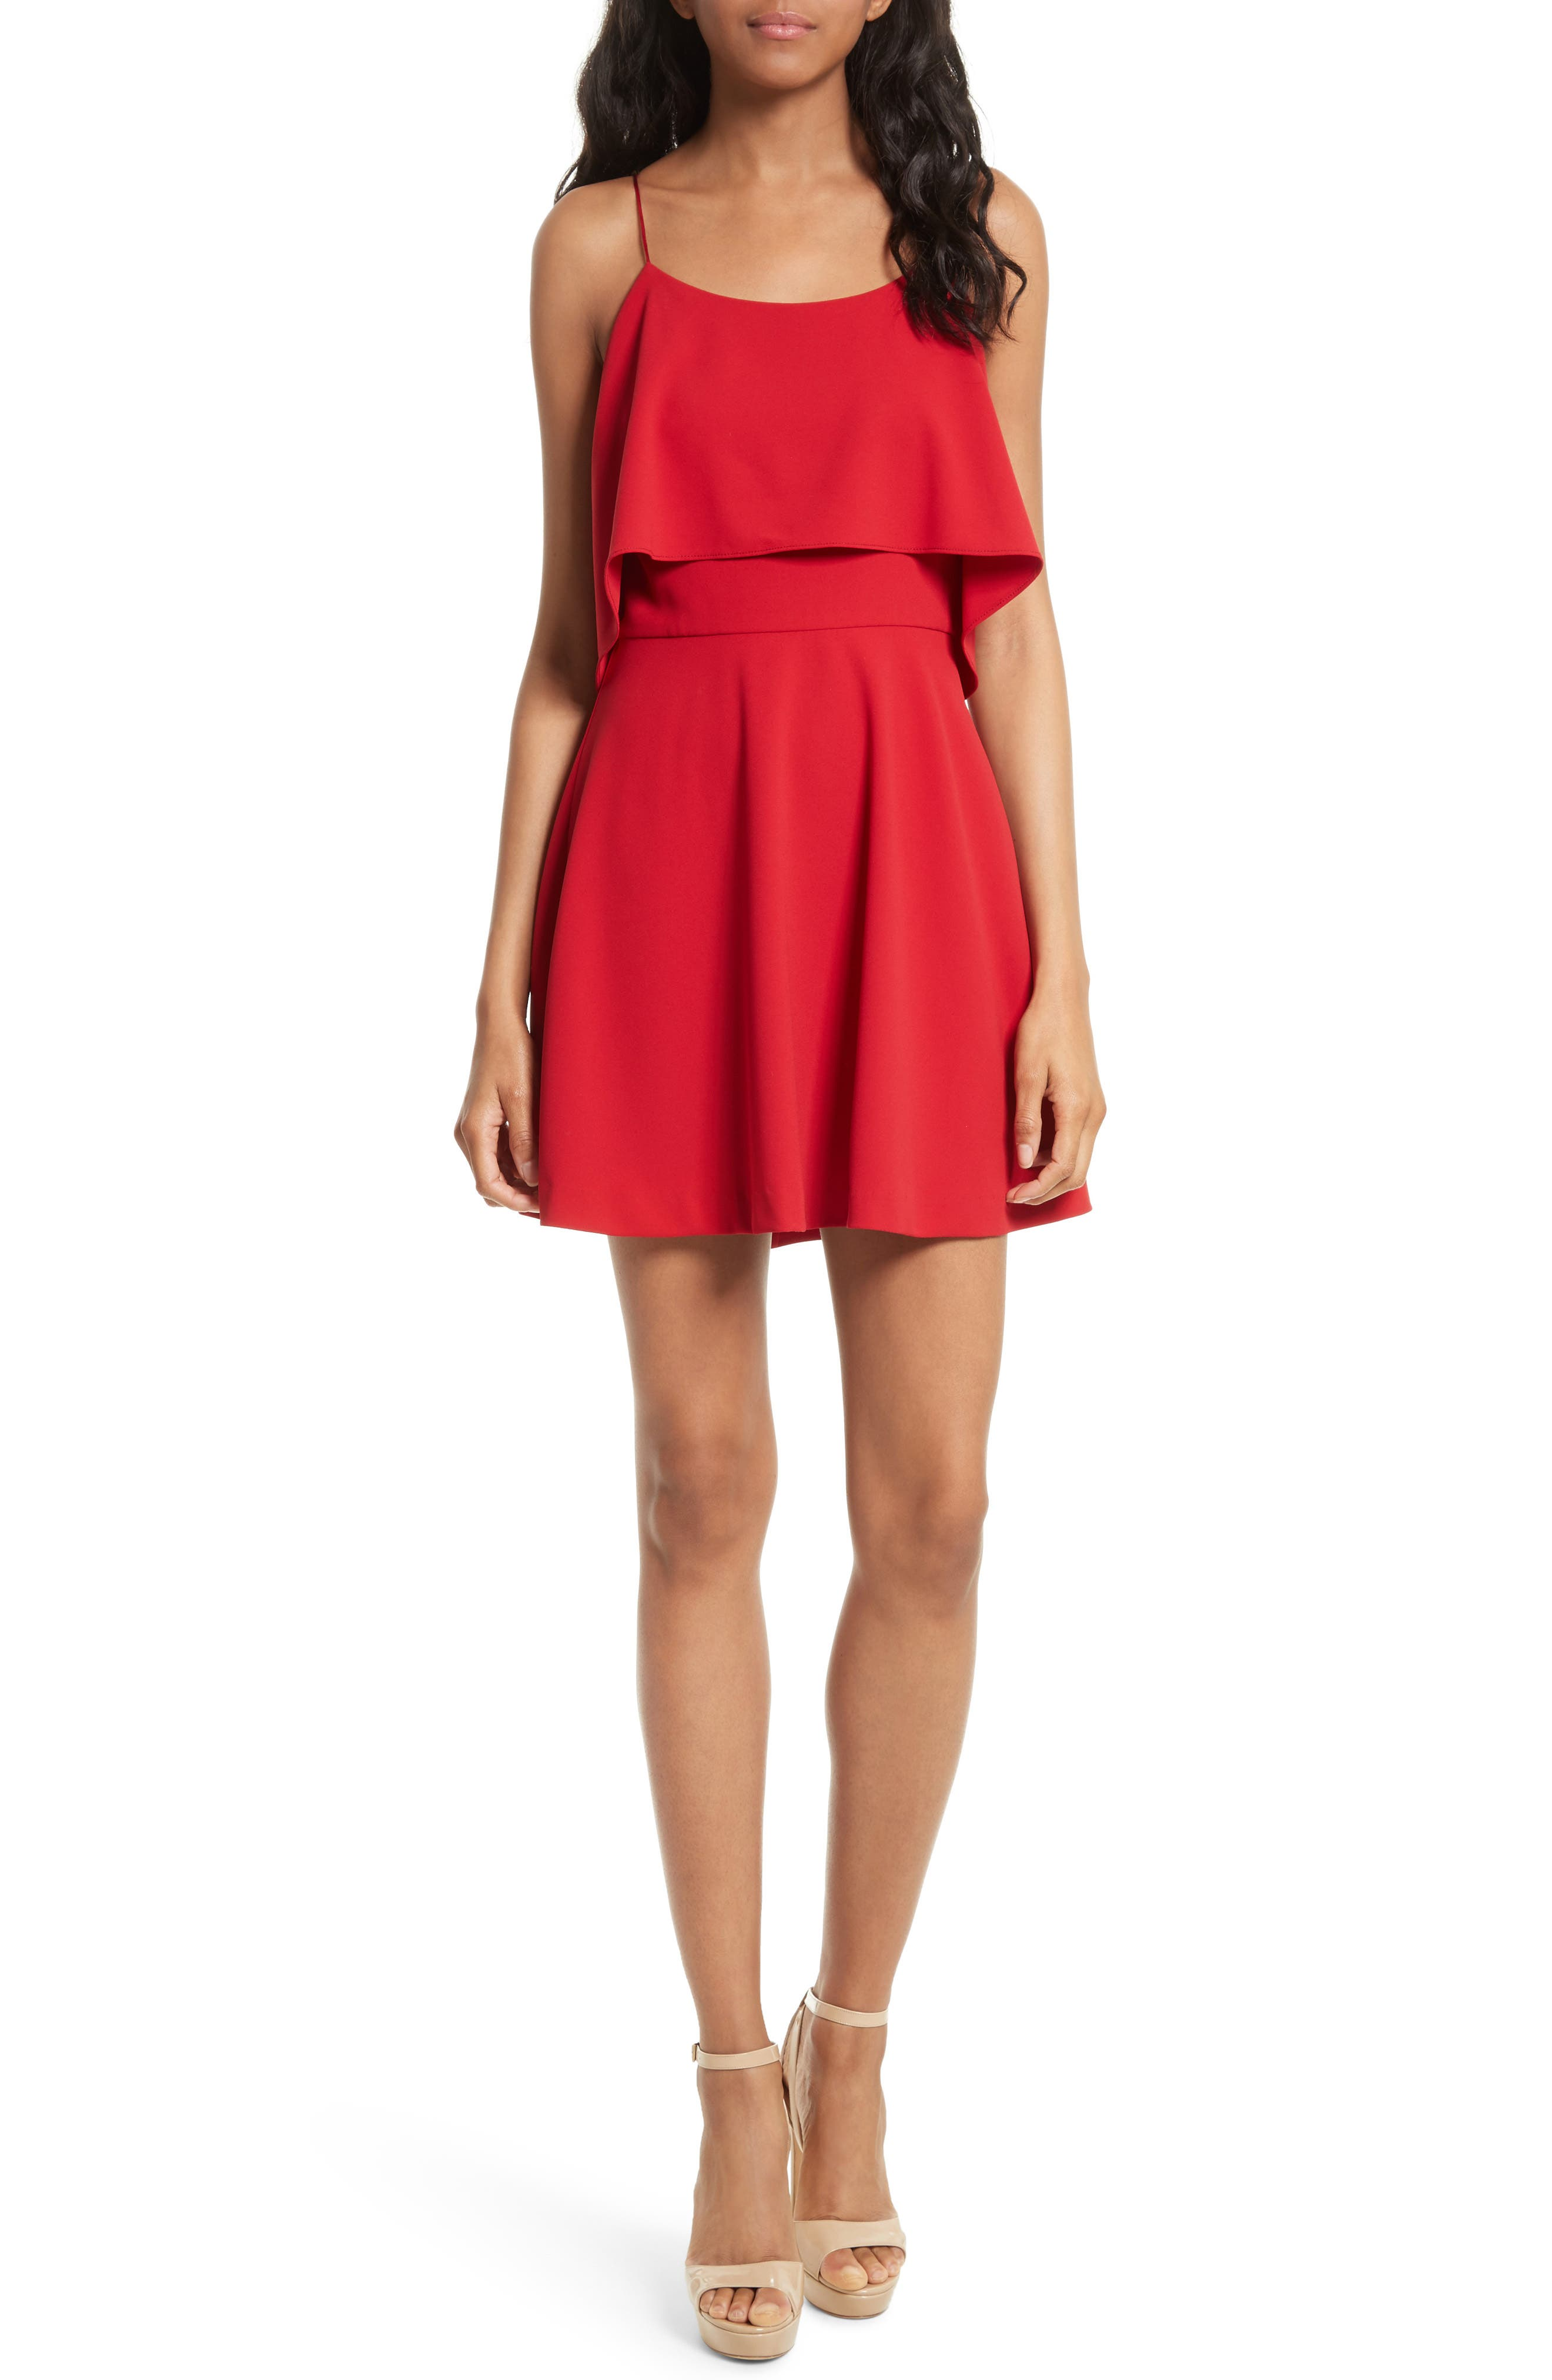 Kipp Layered Ruffle Short Dress,                         Main,                         color, Deep Ruby